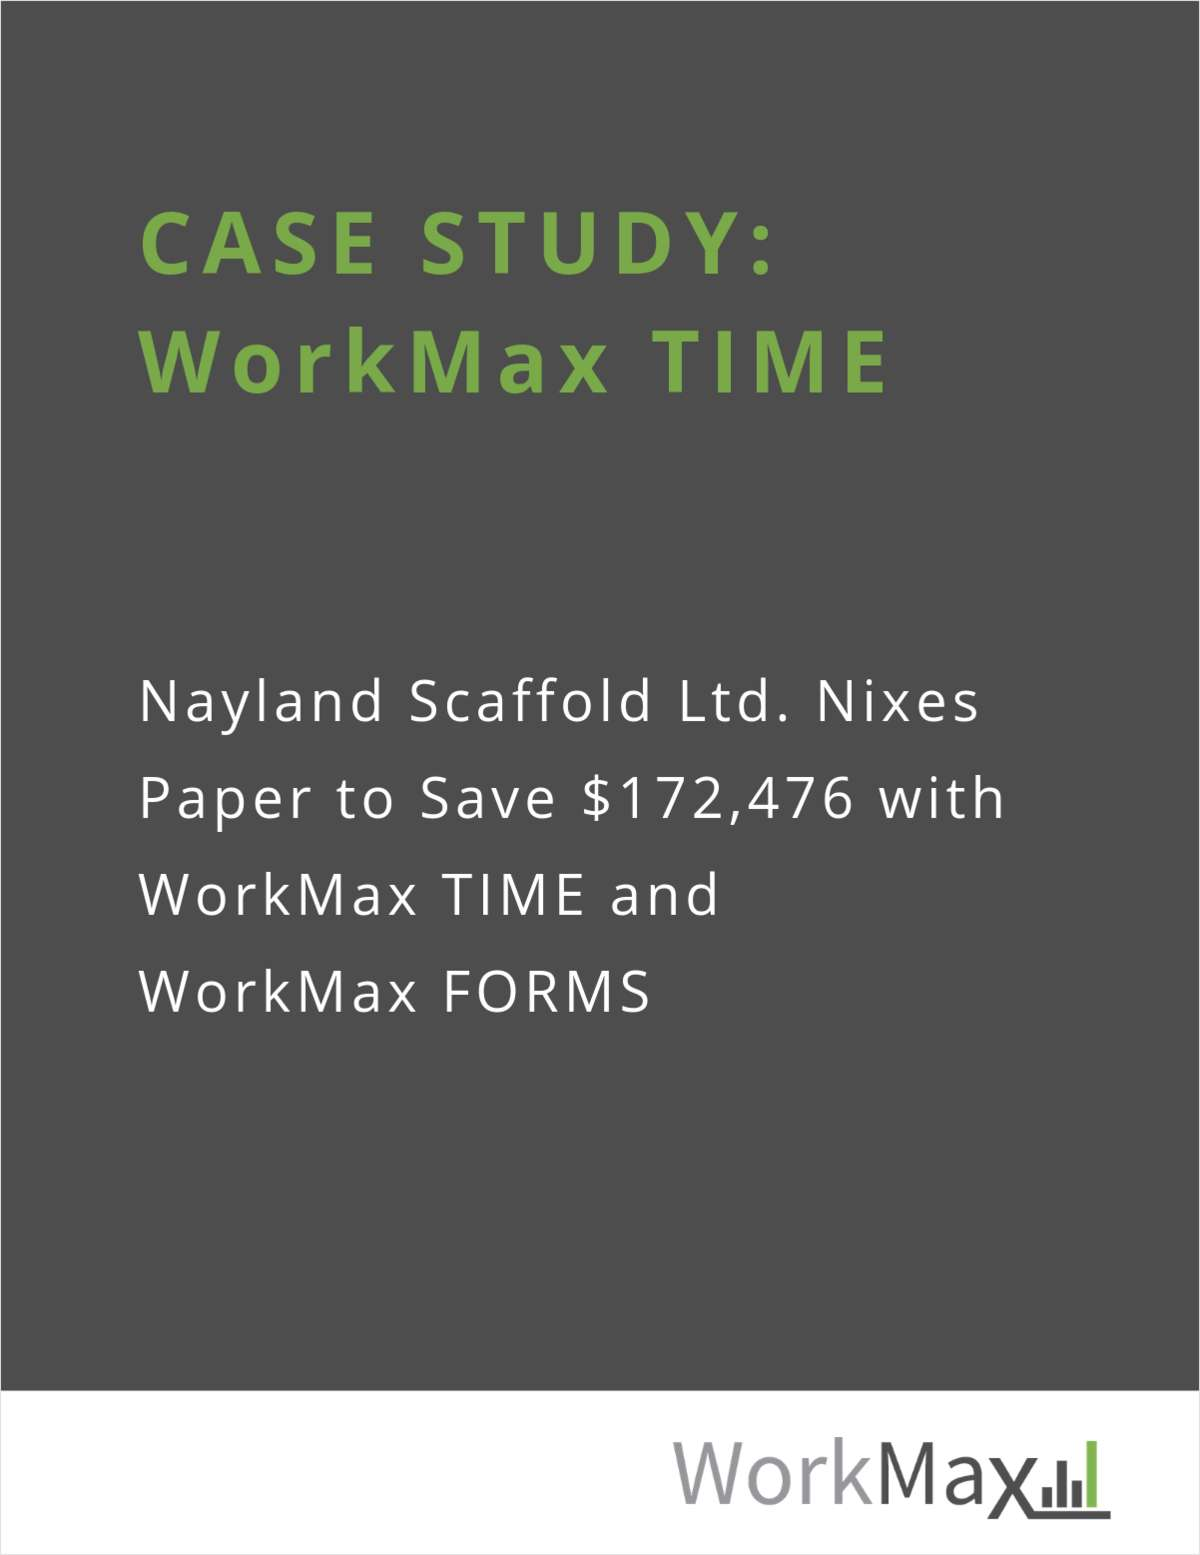 CASE STUDY: Nayland Scaffold for WorkMax TIME & WorkMax FORMS